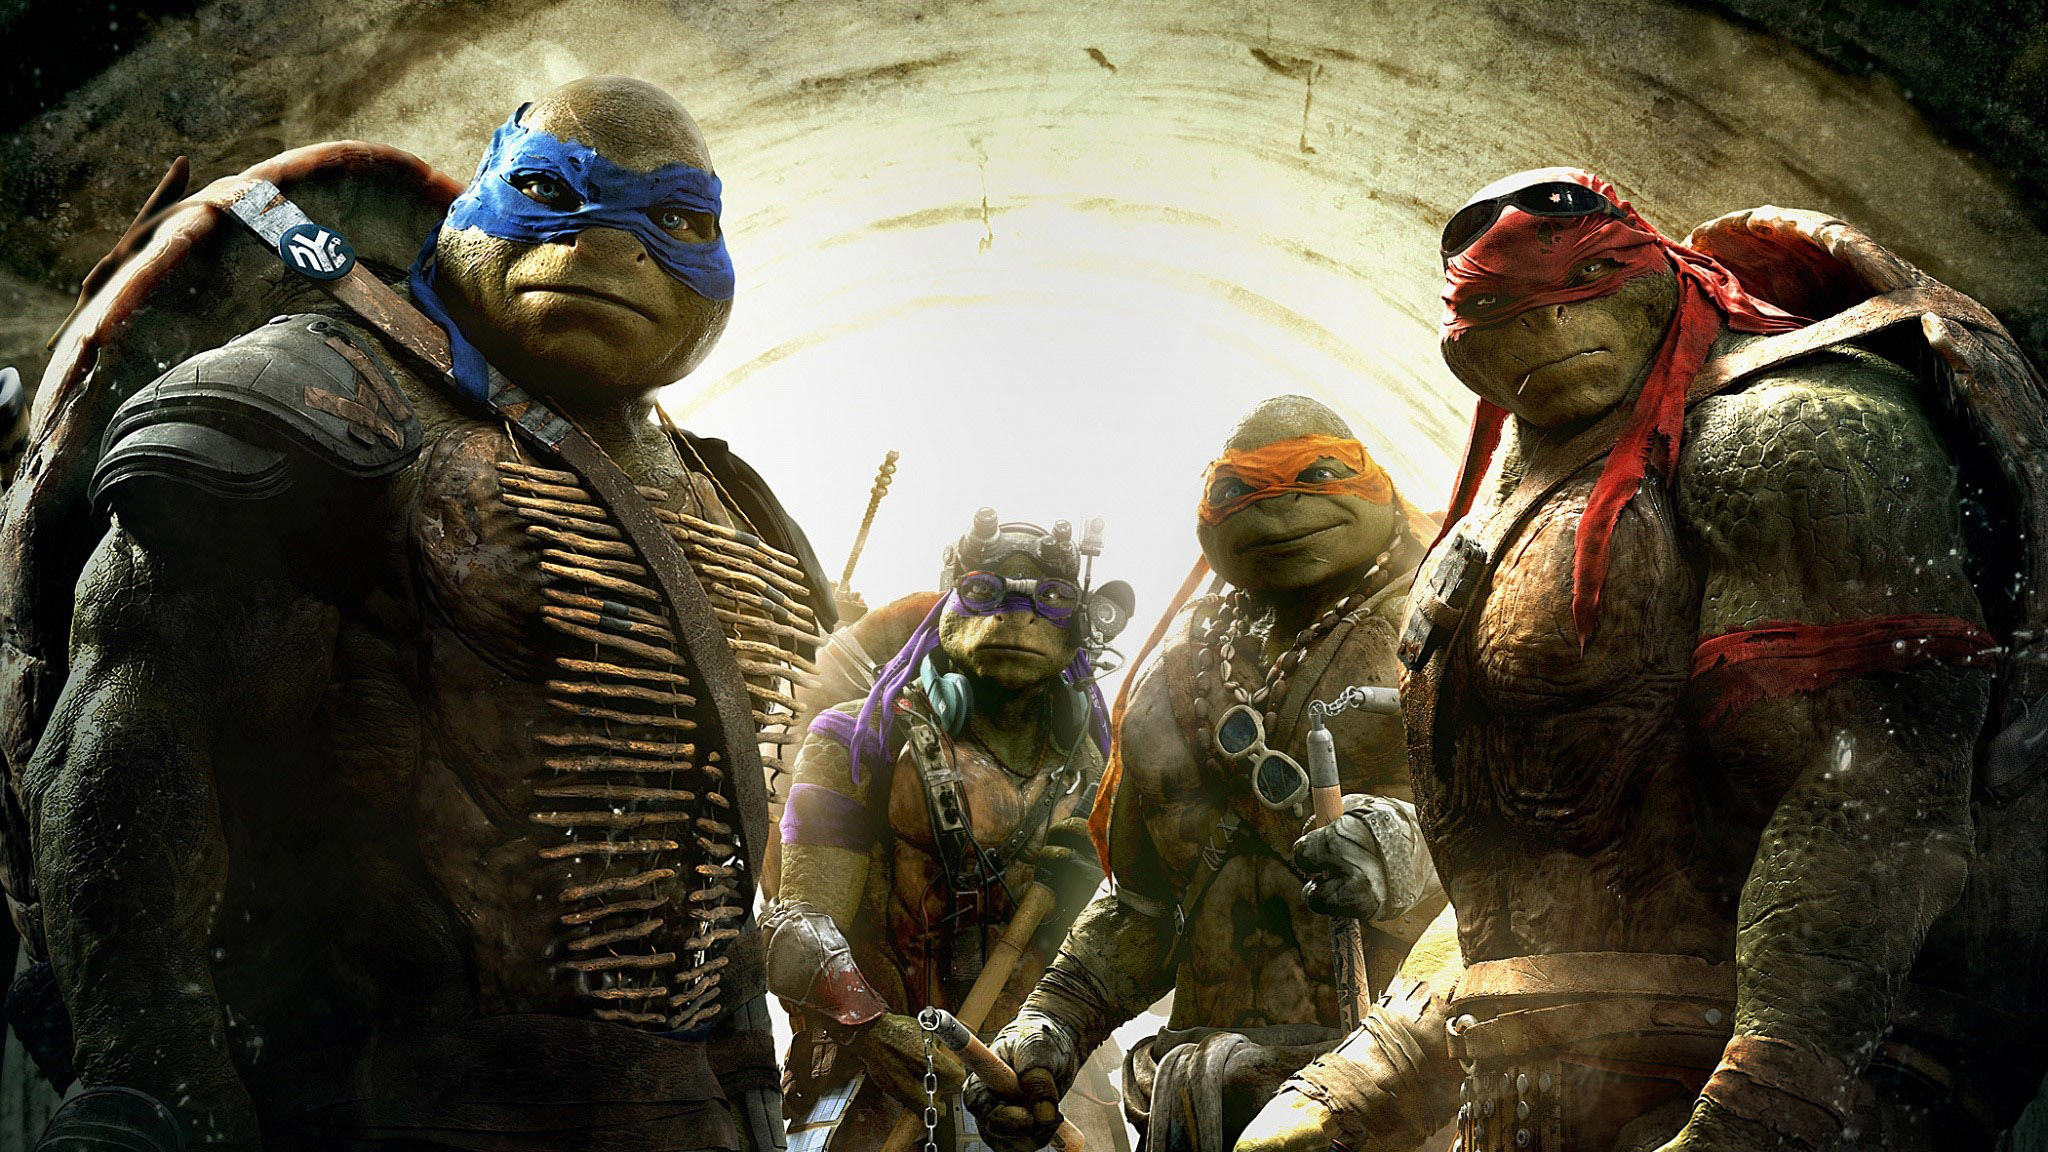 Wallpaper All the ninja turtles